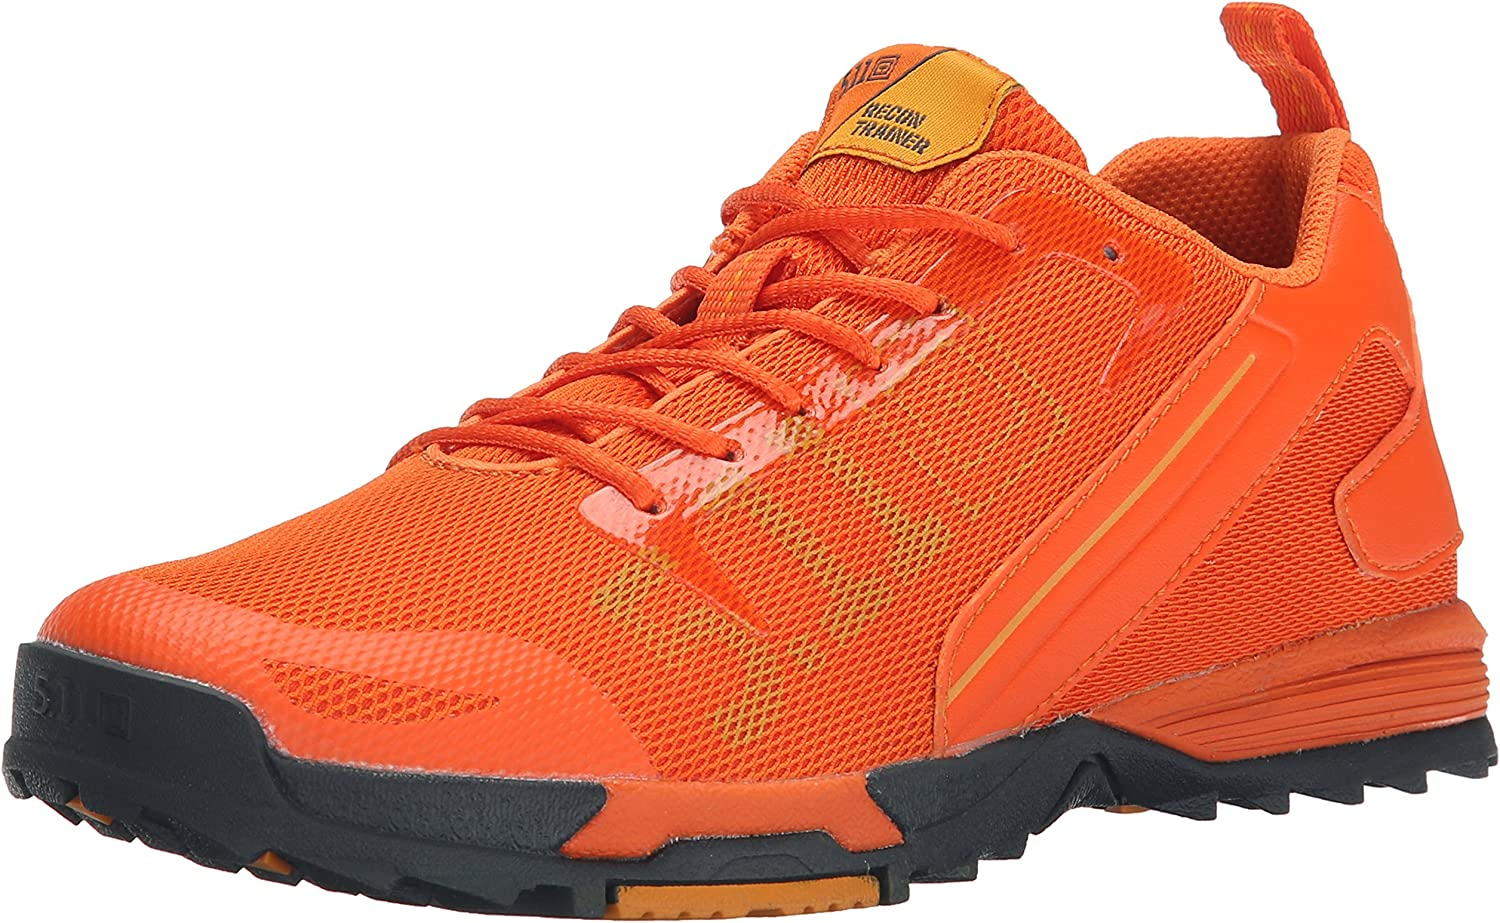 5.11 Tactical Women's Recon TSO Cross-Training Shoe